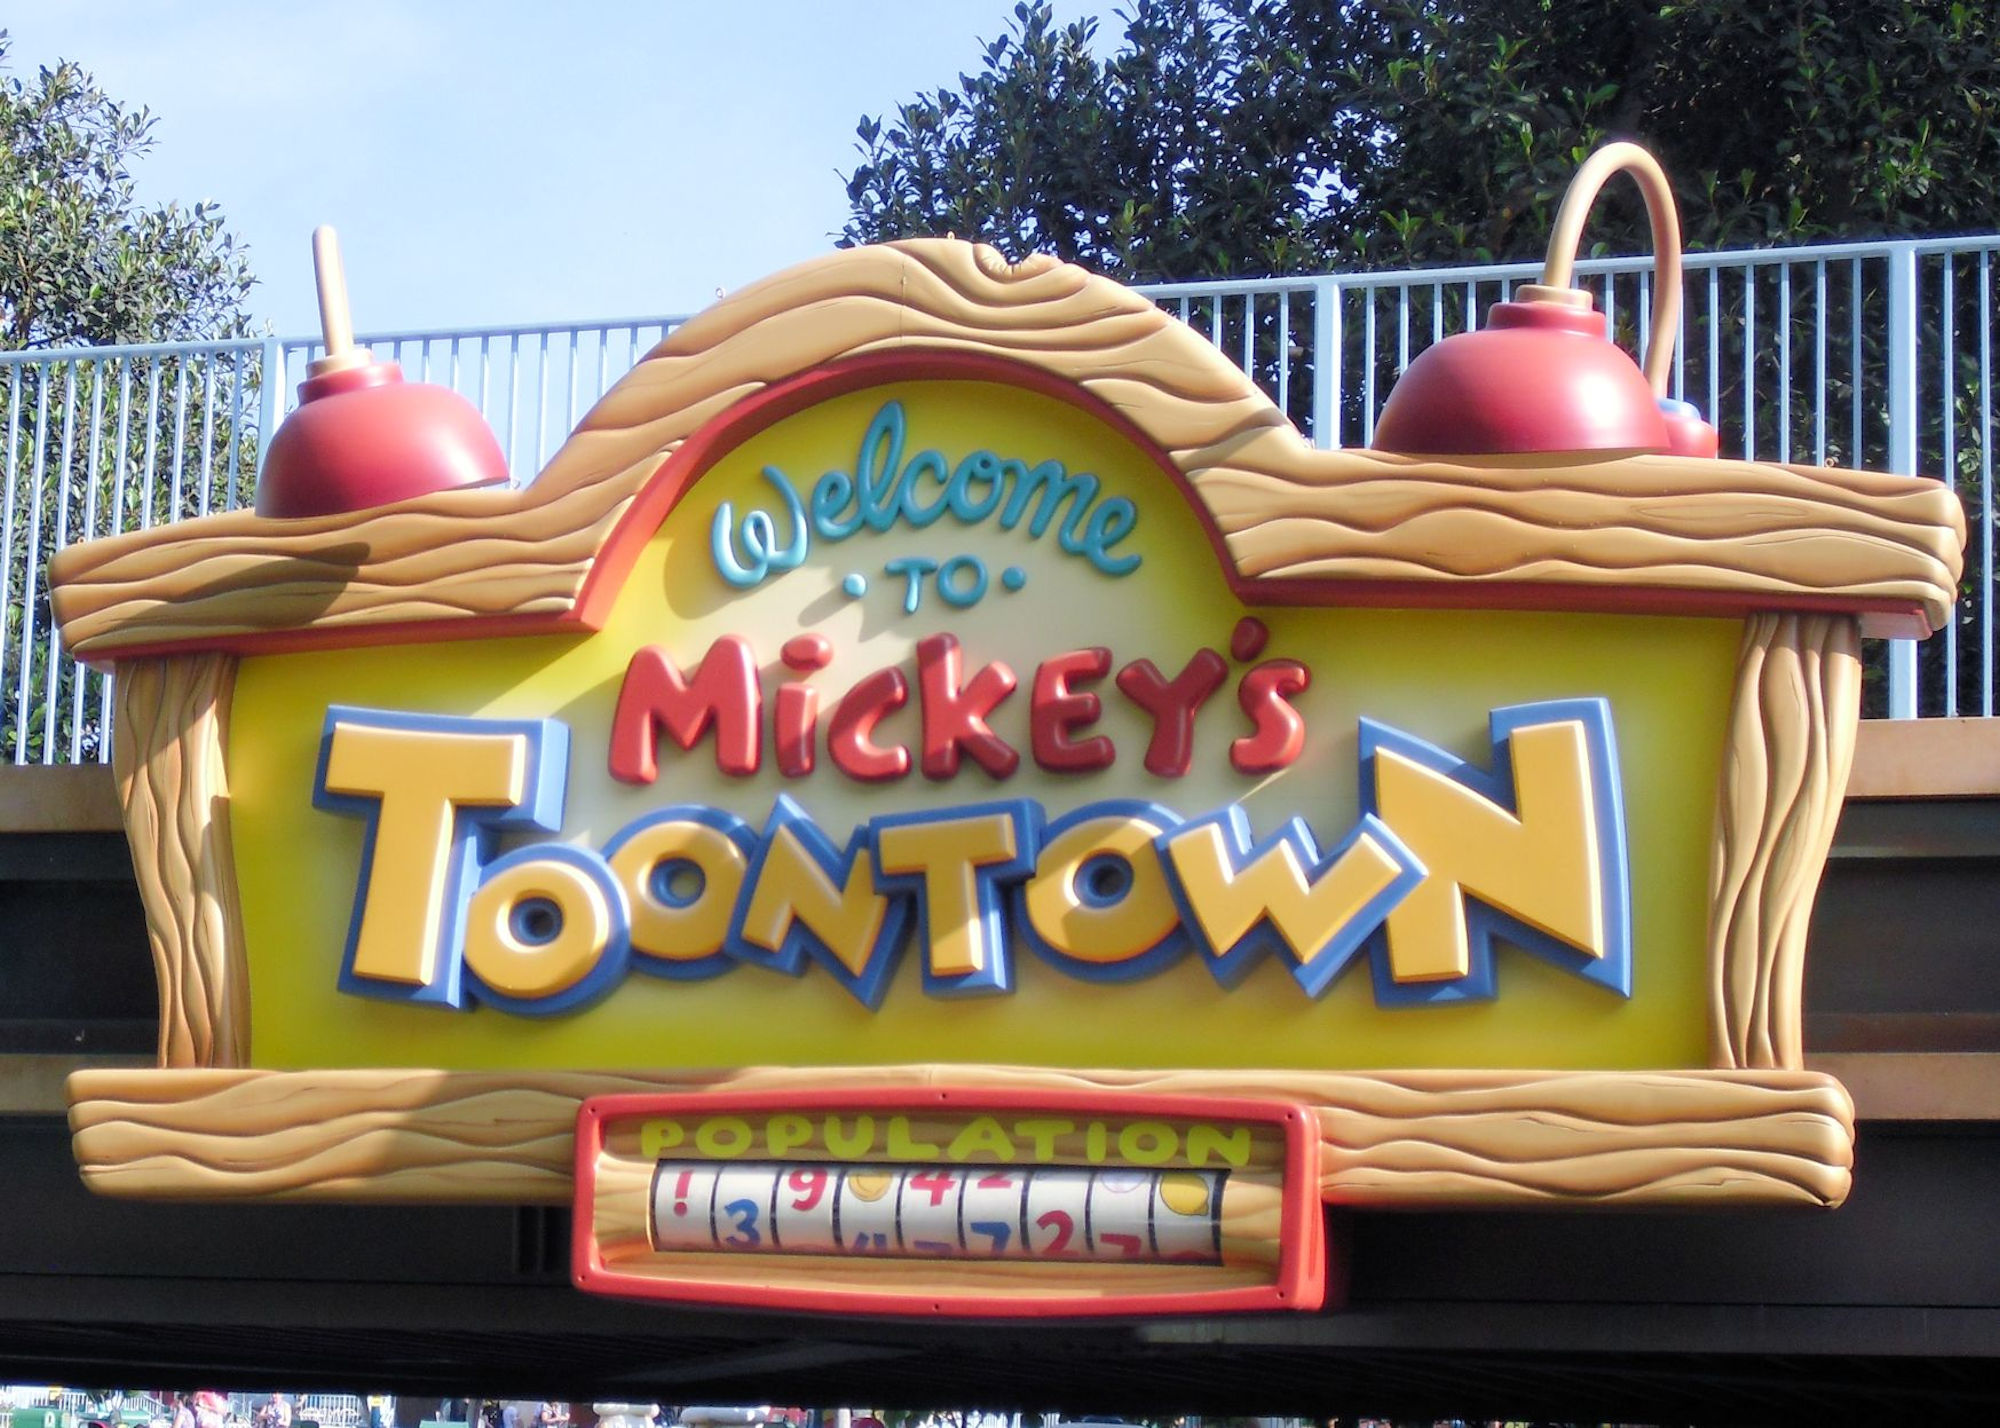 Explore ToonTown at Disneyland and meet Mickey and Minnie |PassPorter.com